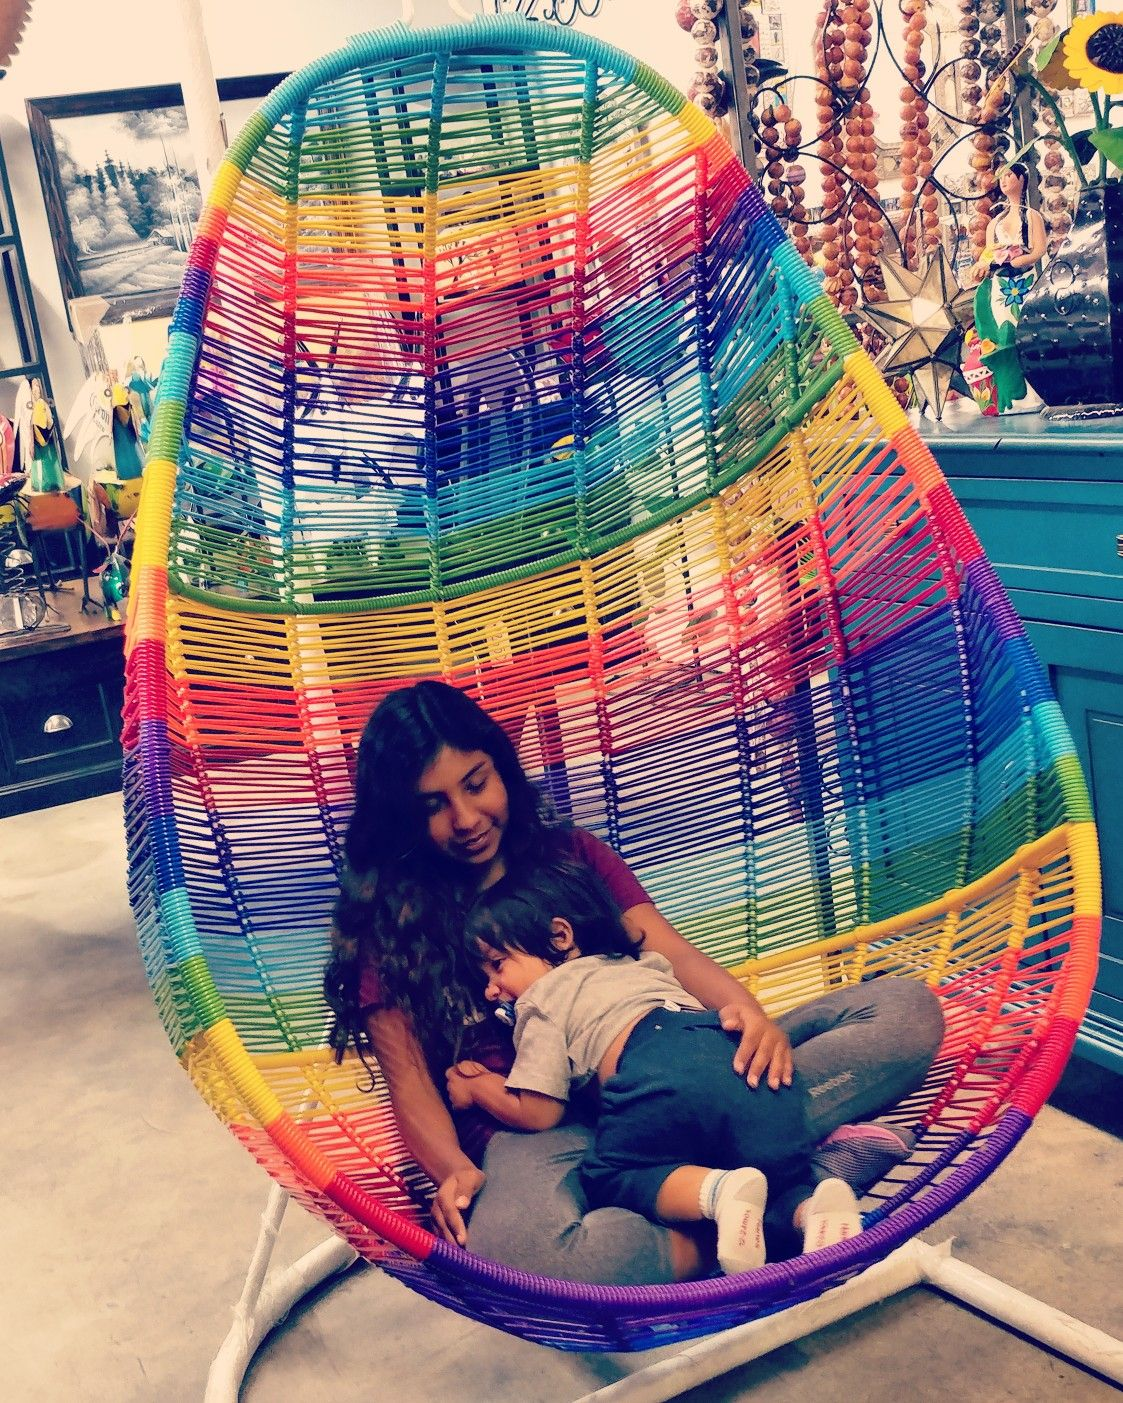 Swing Chair Home Town Foldable Bowl Acapulco Available At Barrio Antiguo 725 Yale St Houston Texas 77007 713 8802105